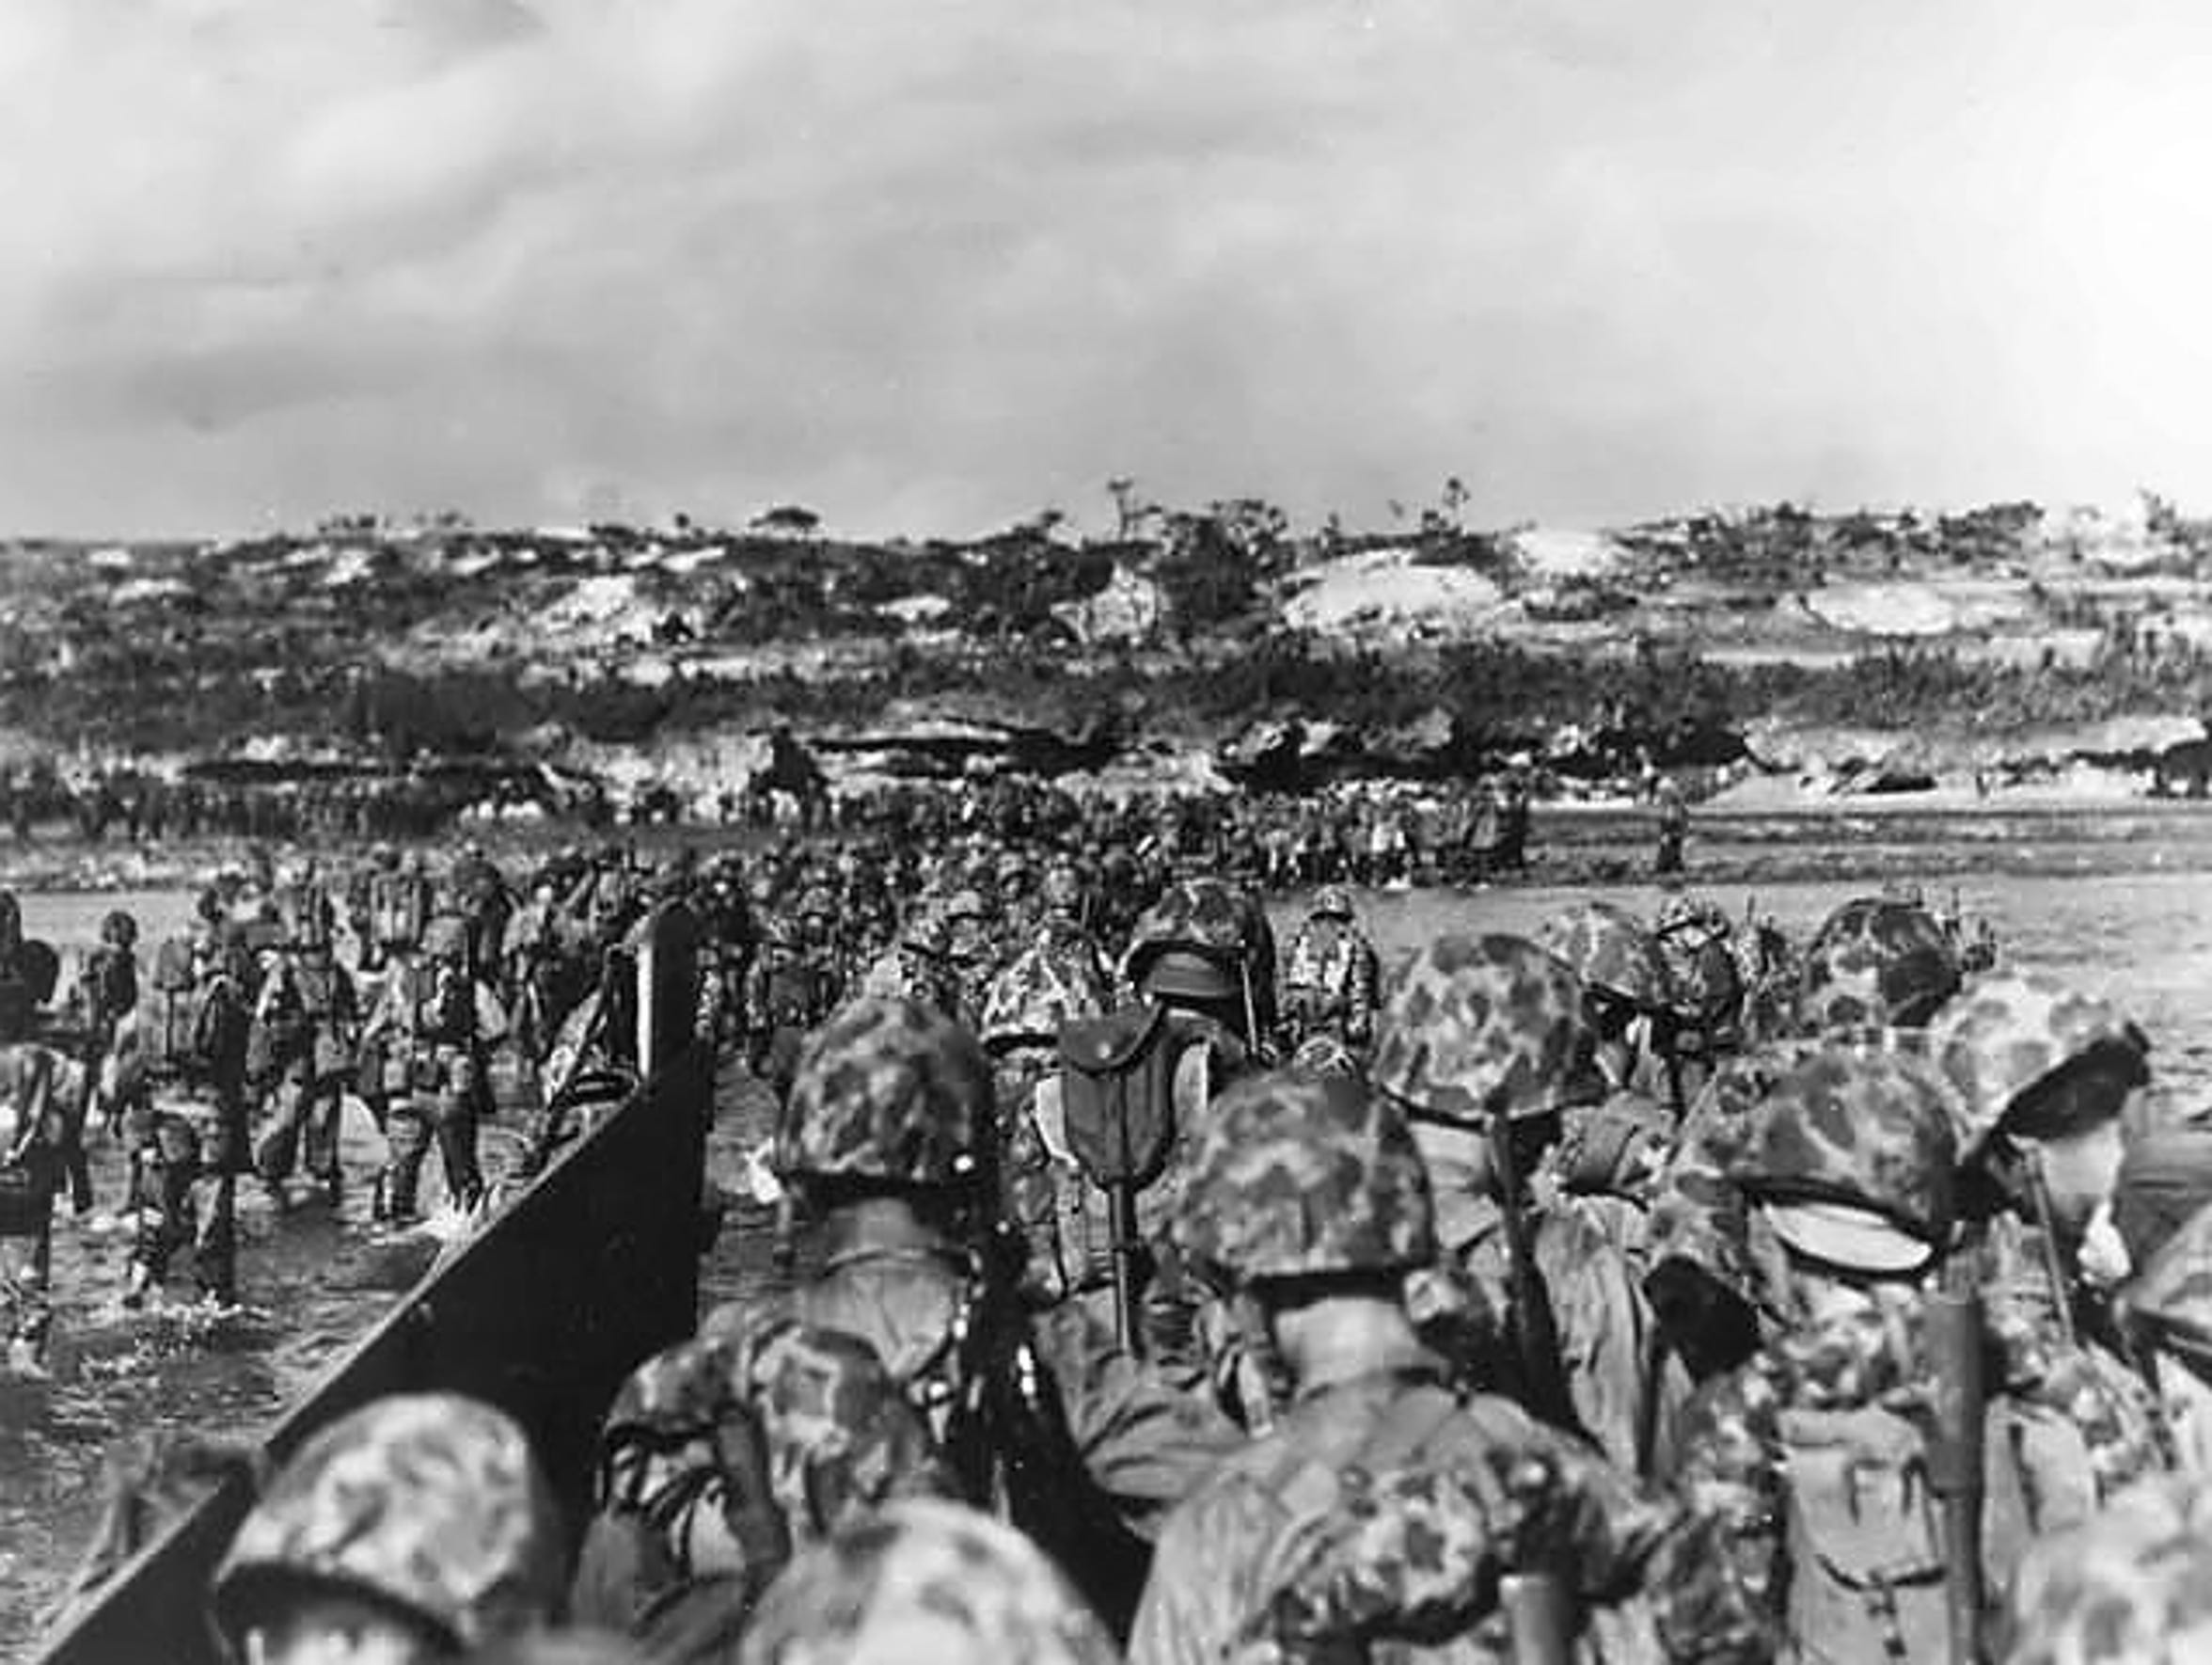 U.S. Marine reinforcements wade ashore to support the